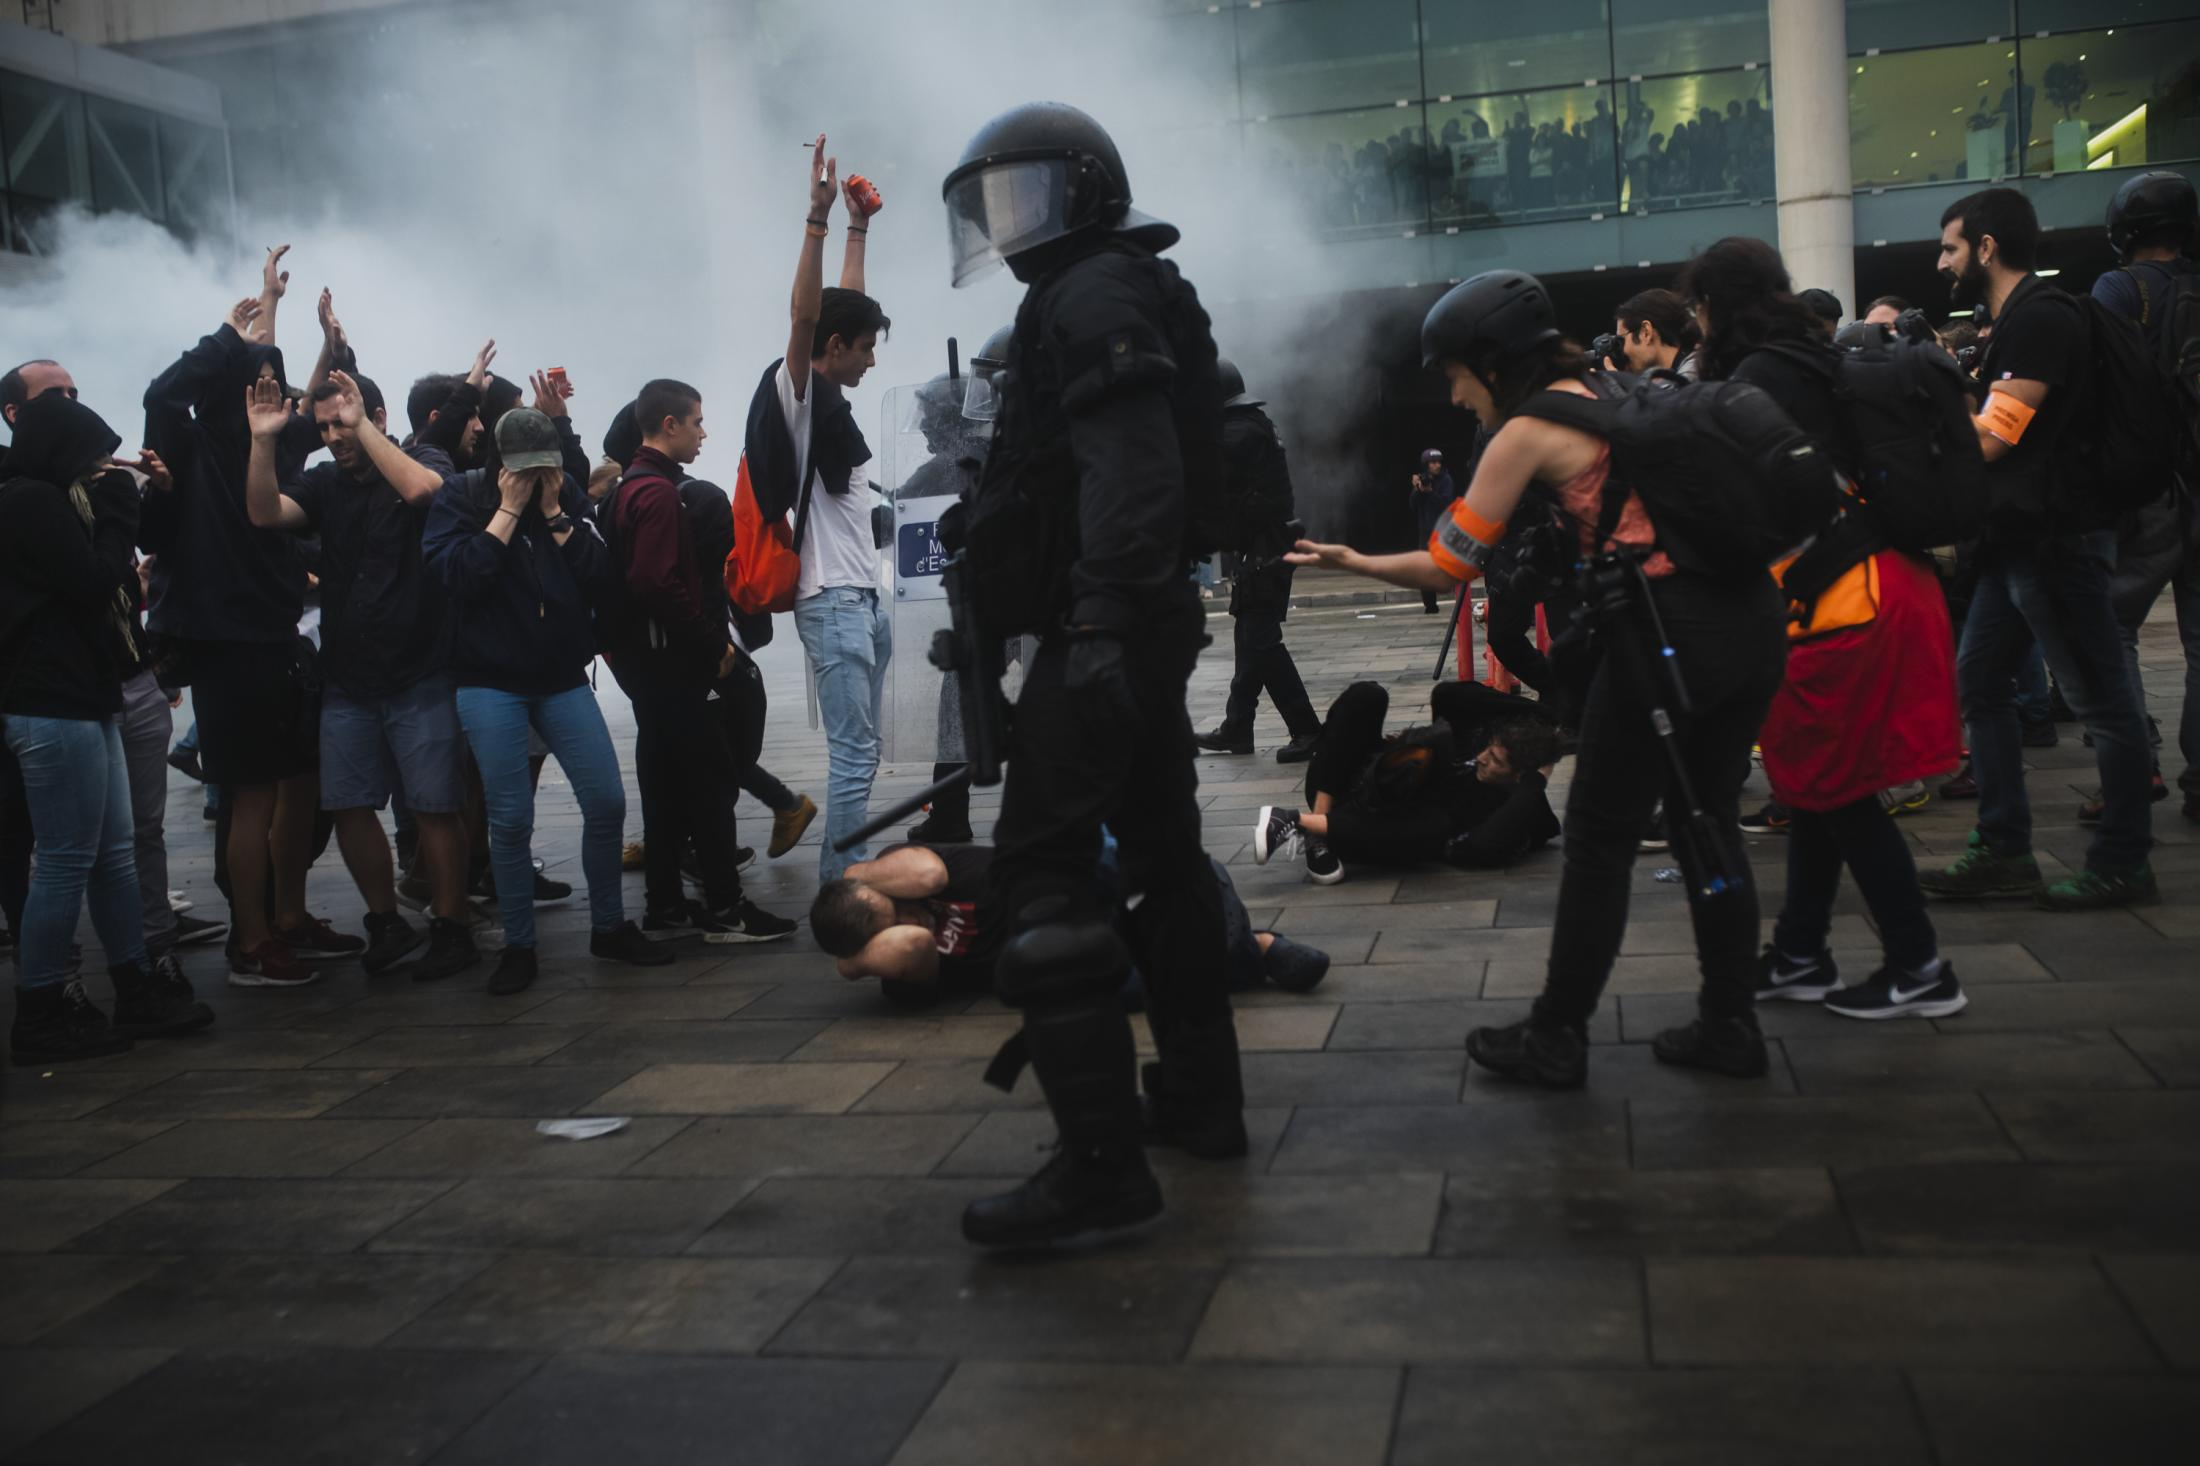 """October 14, 2019. Barcelona, Spain. Riot squads act against protesters at the airport in Barcelona. Spanish authorities decided to begin investigating who is hiding behind the platform and the actions played by a new generation of activists who feel gagged and choose to define themselves """"14-o generation"""". During the protests Police charged, shotted foam bullets, tear gas, rubber bullets, water cannon, and injured journalists. The Commissioner for Human Rights of the Council of Europe has expressed her concern at the reports of attacks on journalists covering the demonstrations in Catalonia, calling on the Spanish government to investigate abuse of power by law enforcement officials. The task of identifying the perpetrator of violence is one of the obligations of the police, even in the case that they are also exercised by the police."""